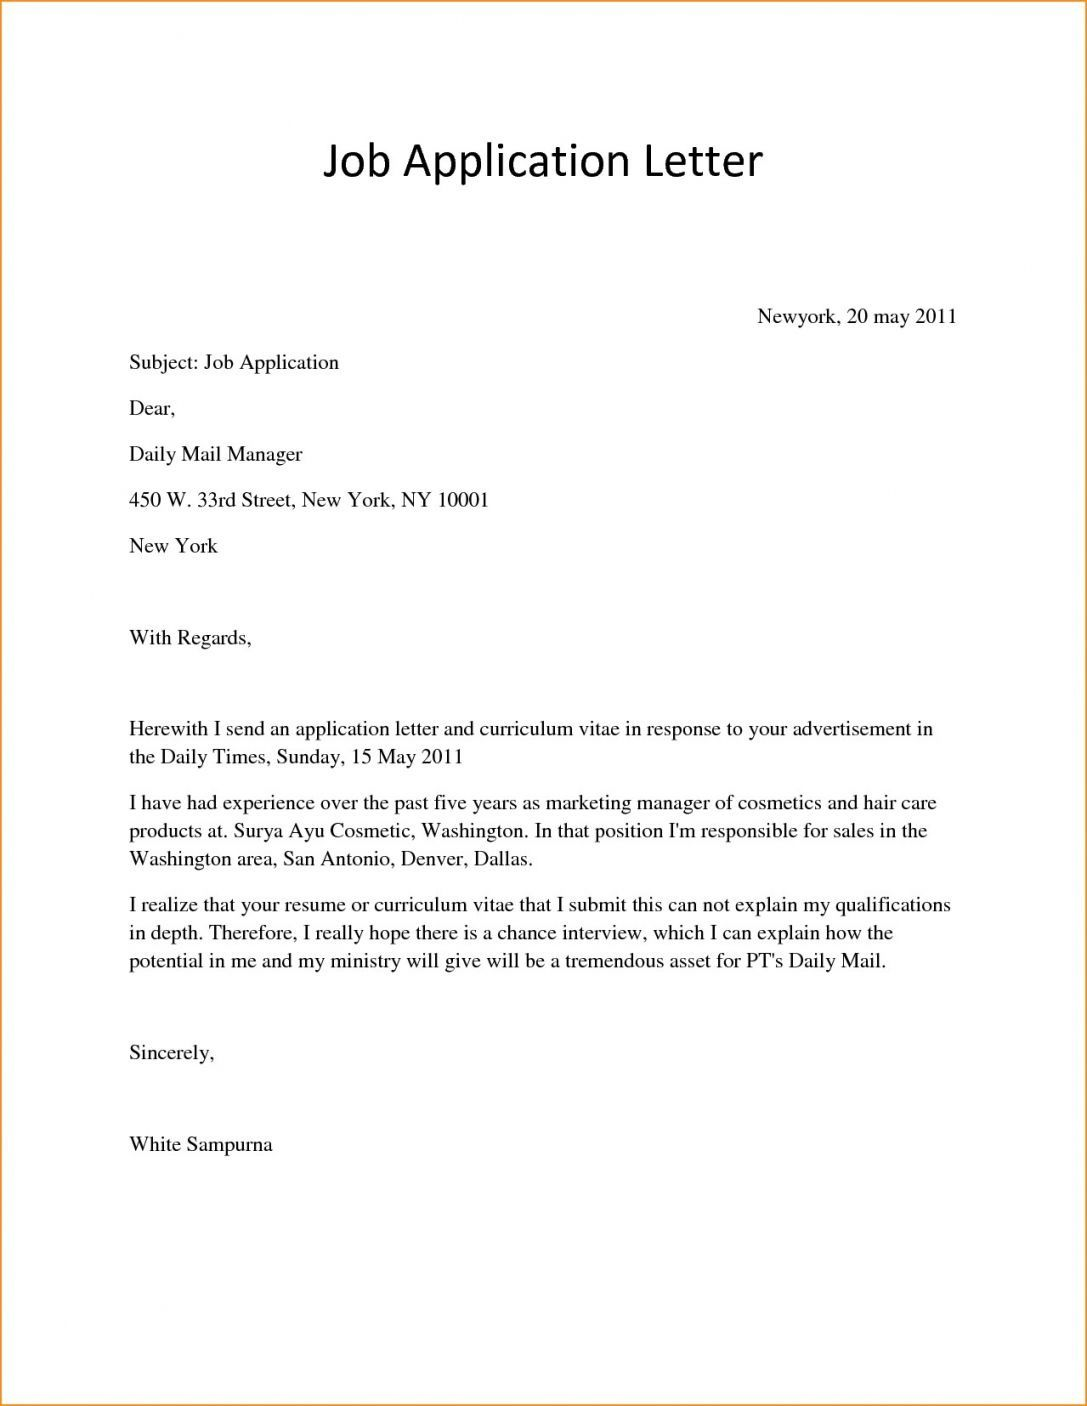 006 Awful Basic Covering Letter Template Photo  Simple Application Job Sample CoverFull